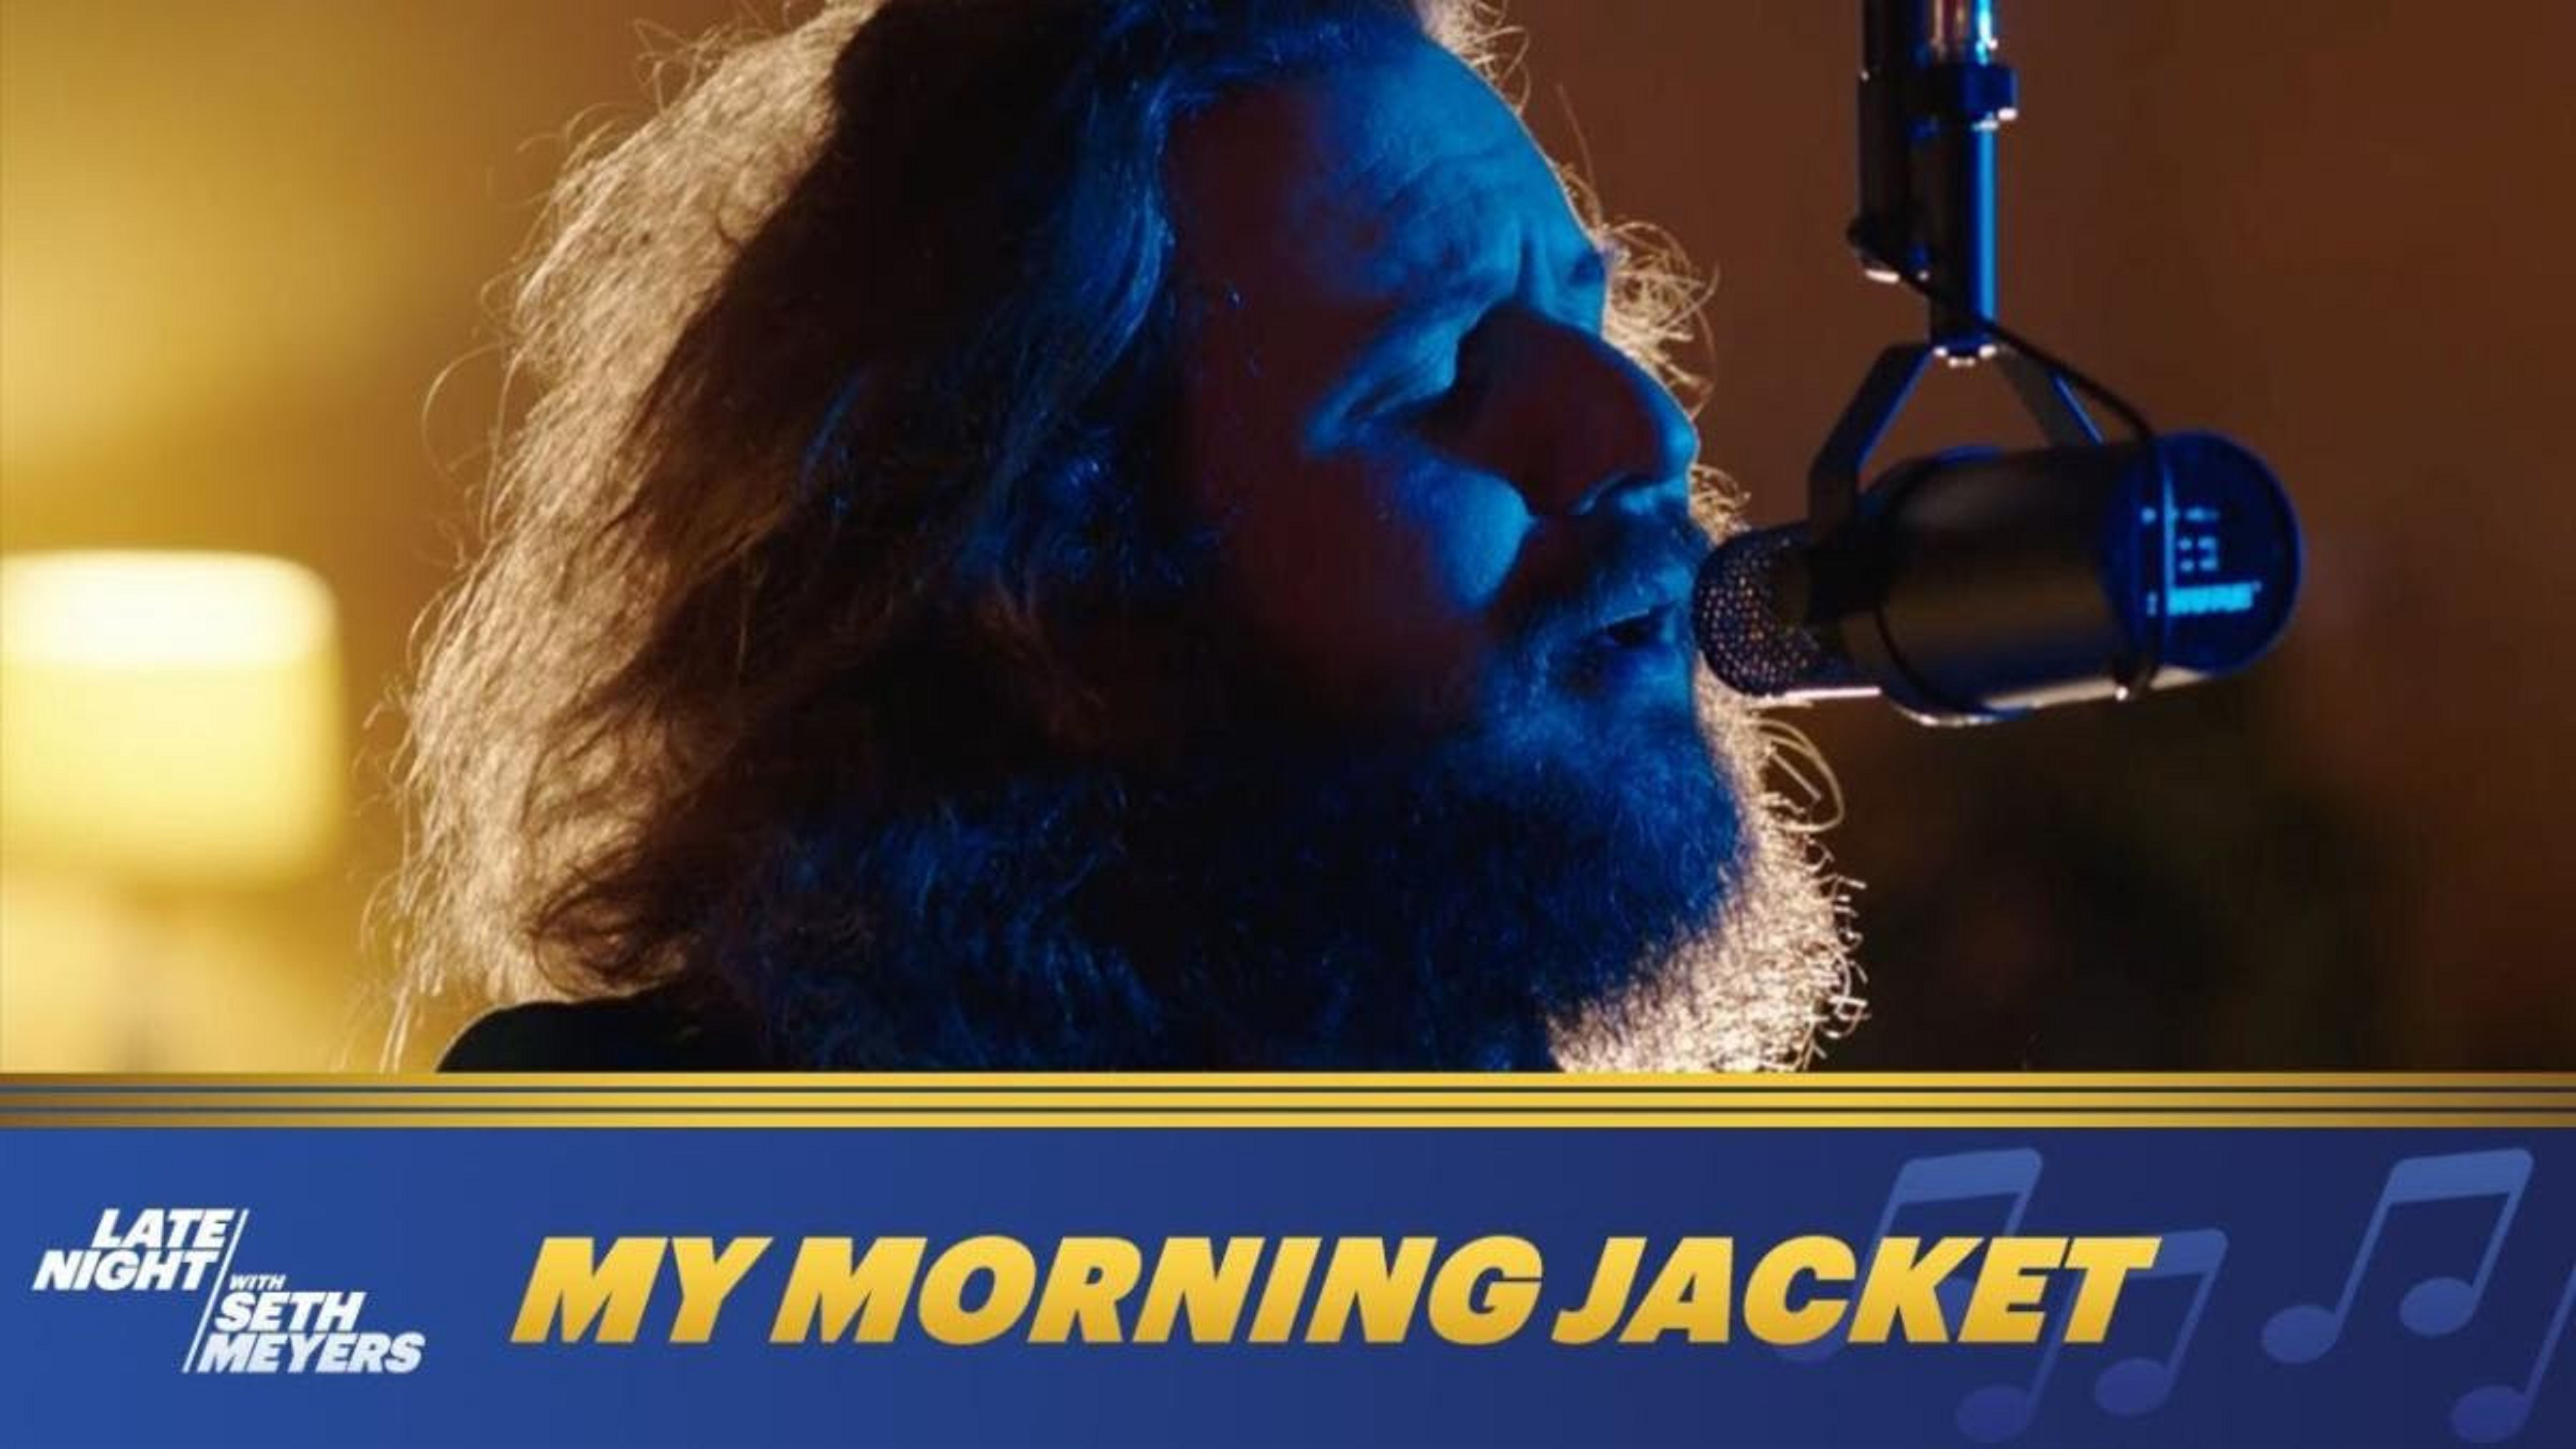 My Morning Jacket on Late Night with Seth Meyers